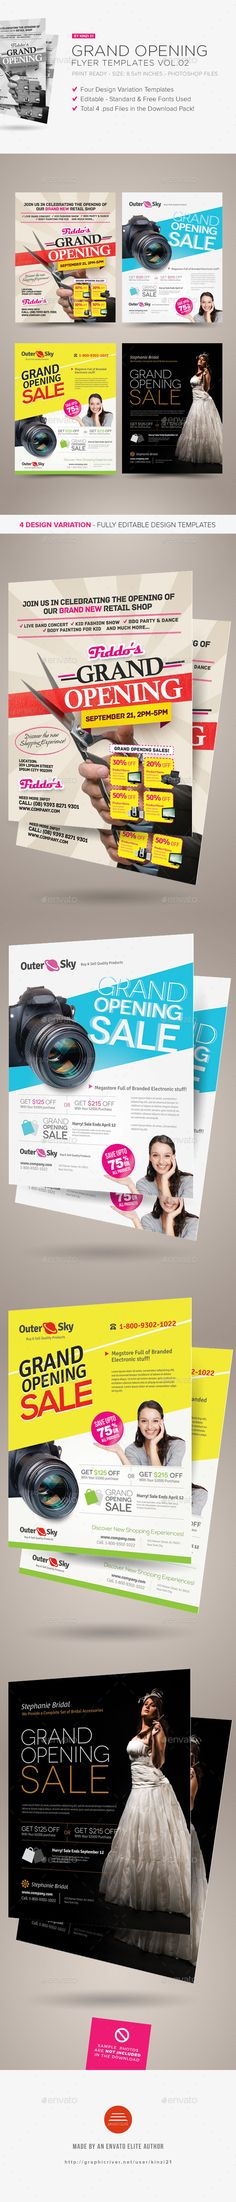 10 best grand opening flyer images on pinterest card templates